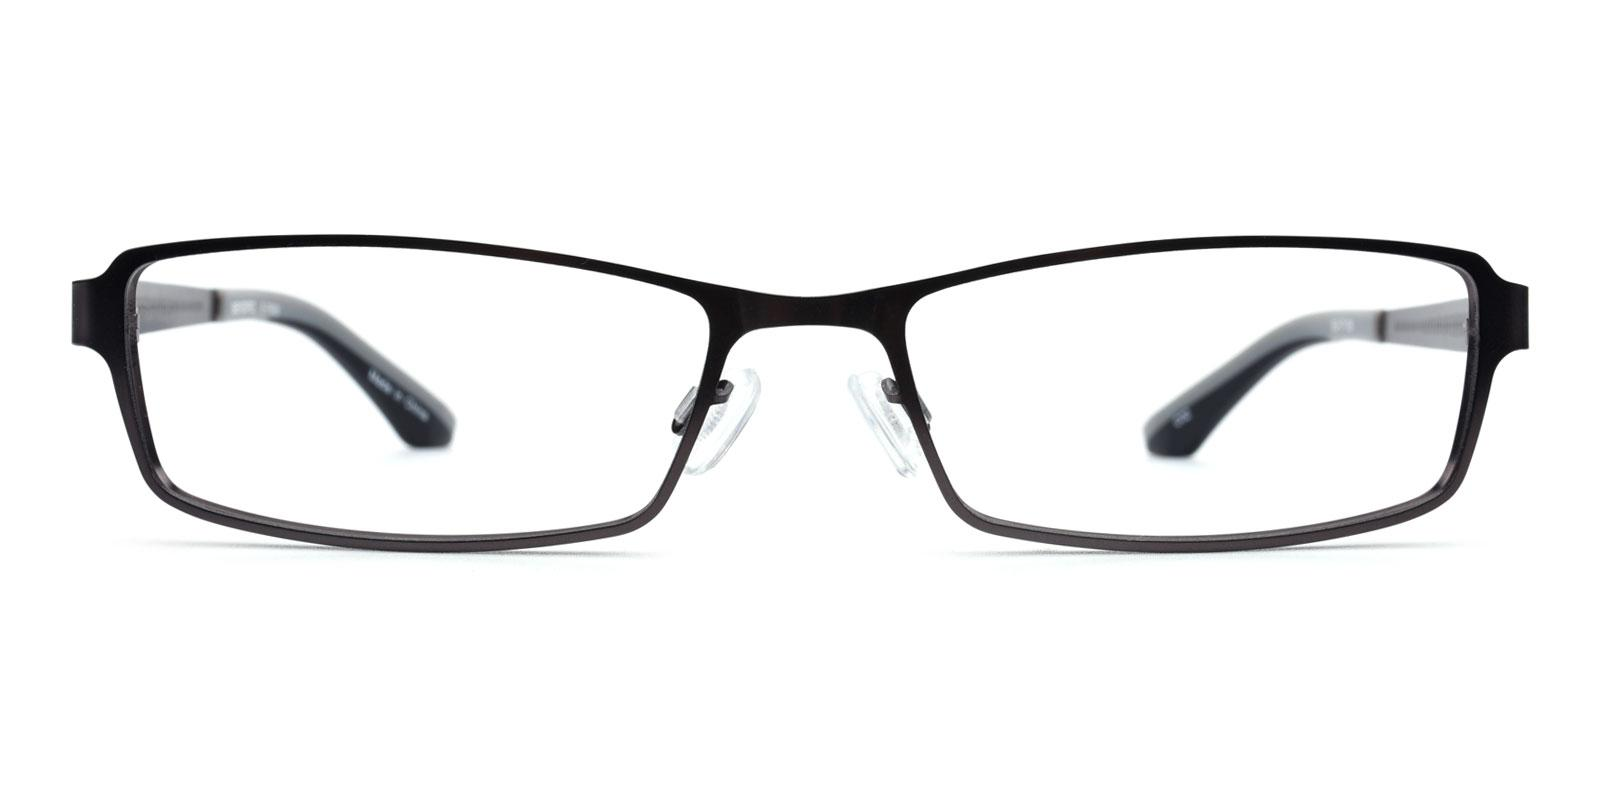 Benson-Gun-Rectangle-Metal-Eyeglasses-additional2